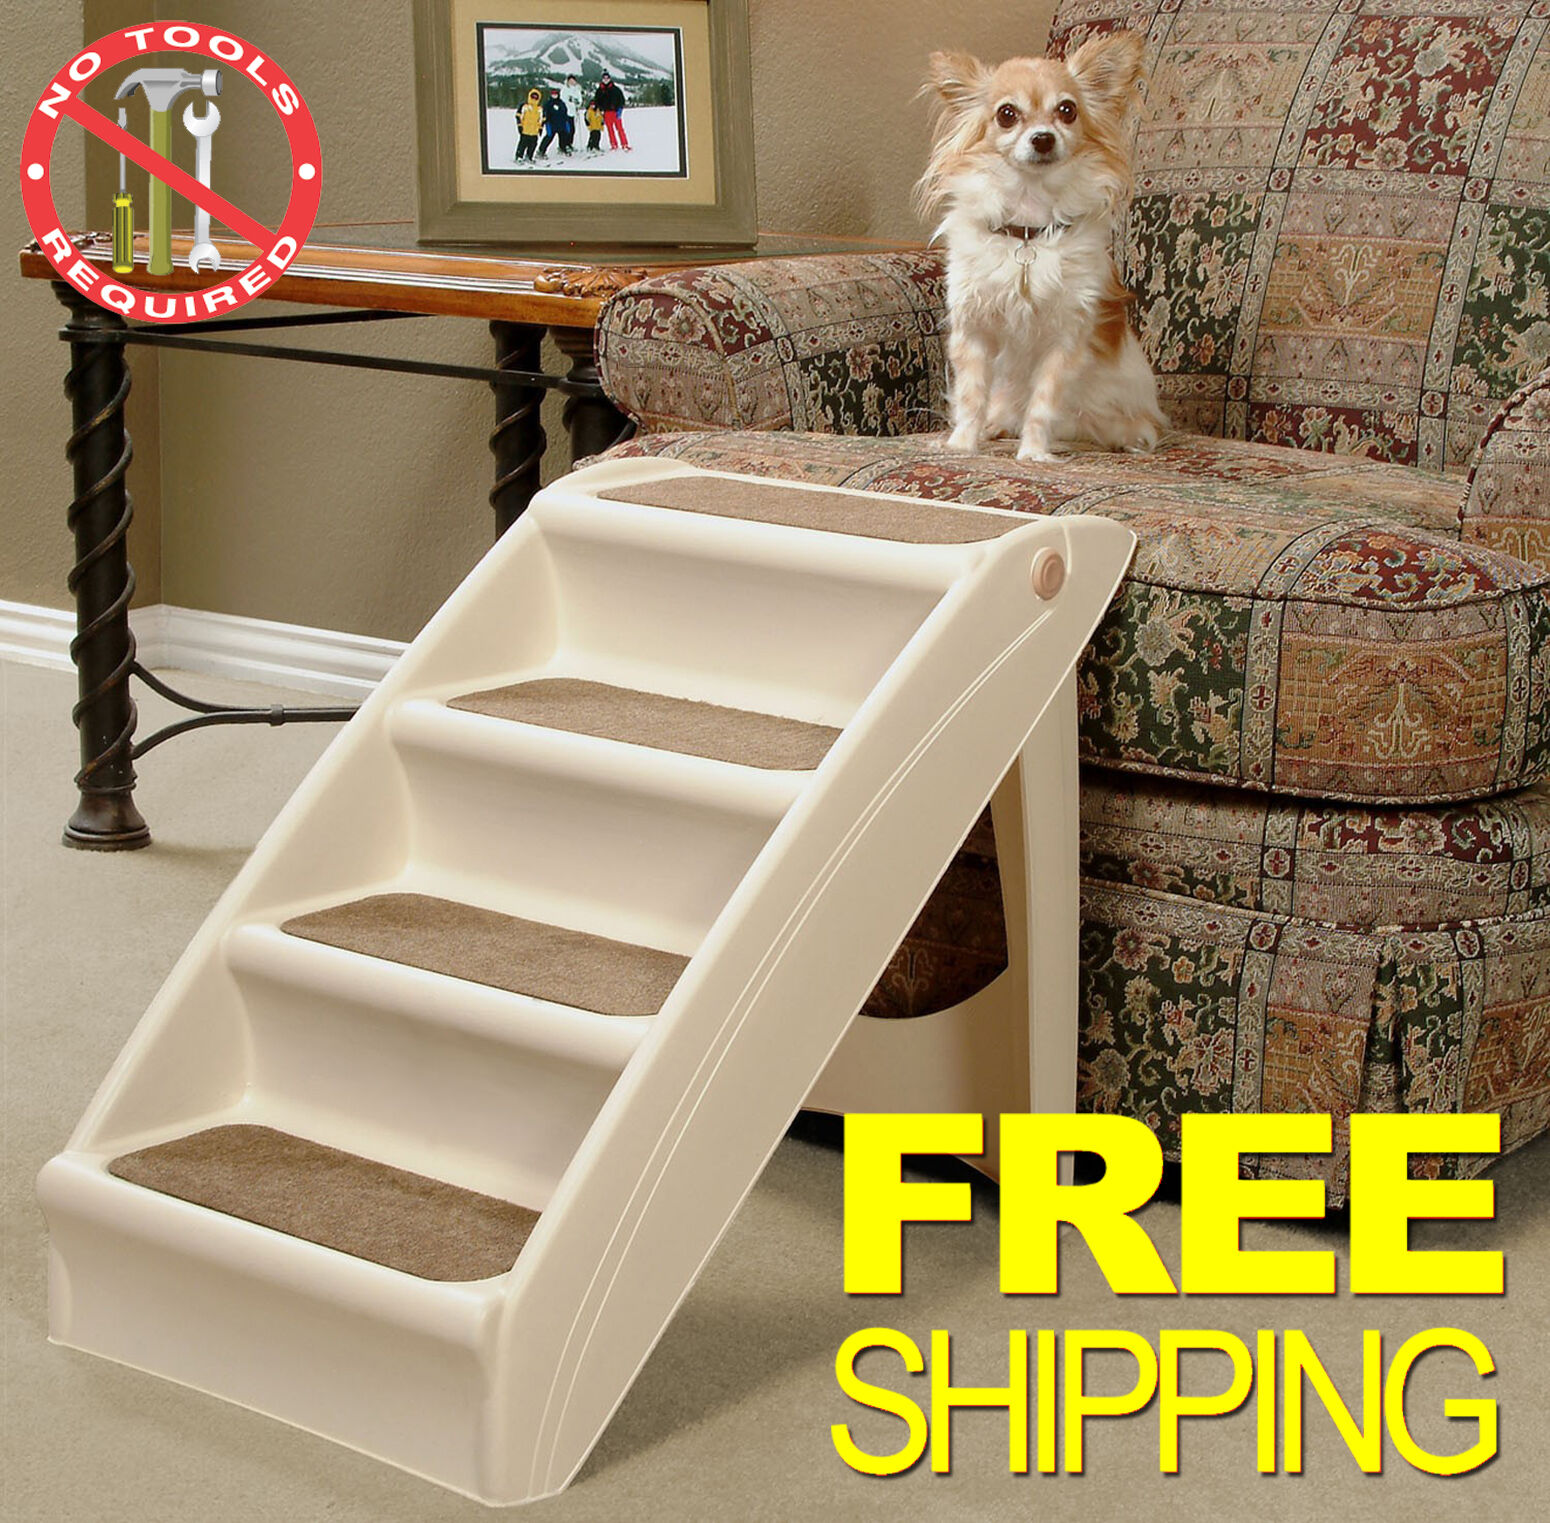 10 Of 12 Pet Stairs Dog Steps Cat Ramp Doggy Step Portable Folding Ladder  Animal Safe New 11 Of 12 Pet Stairs Dog Steps ...